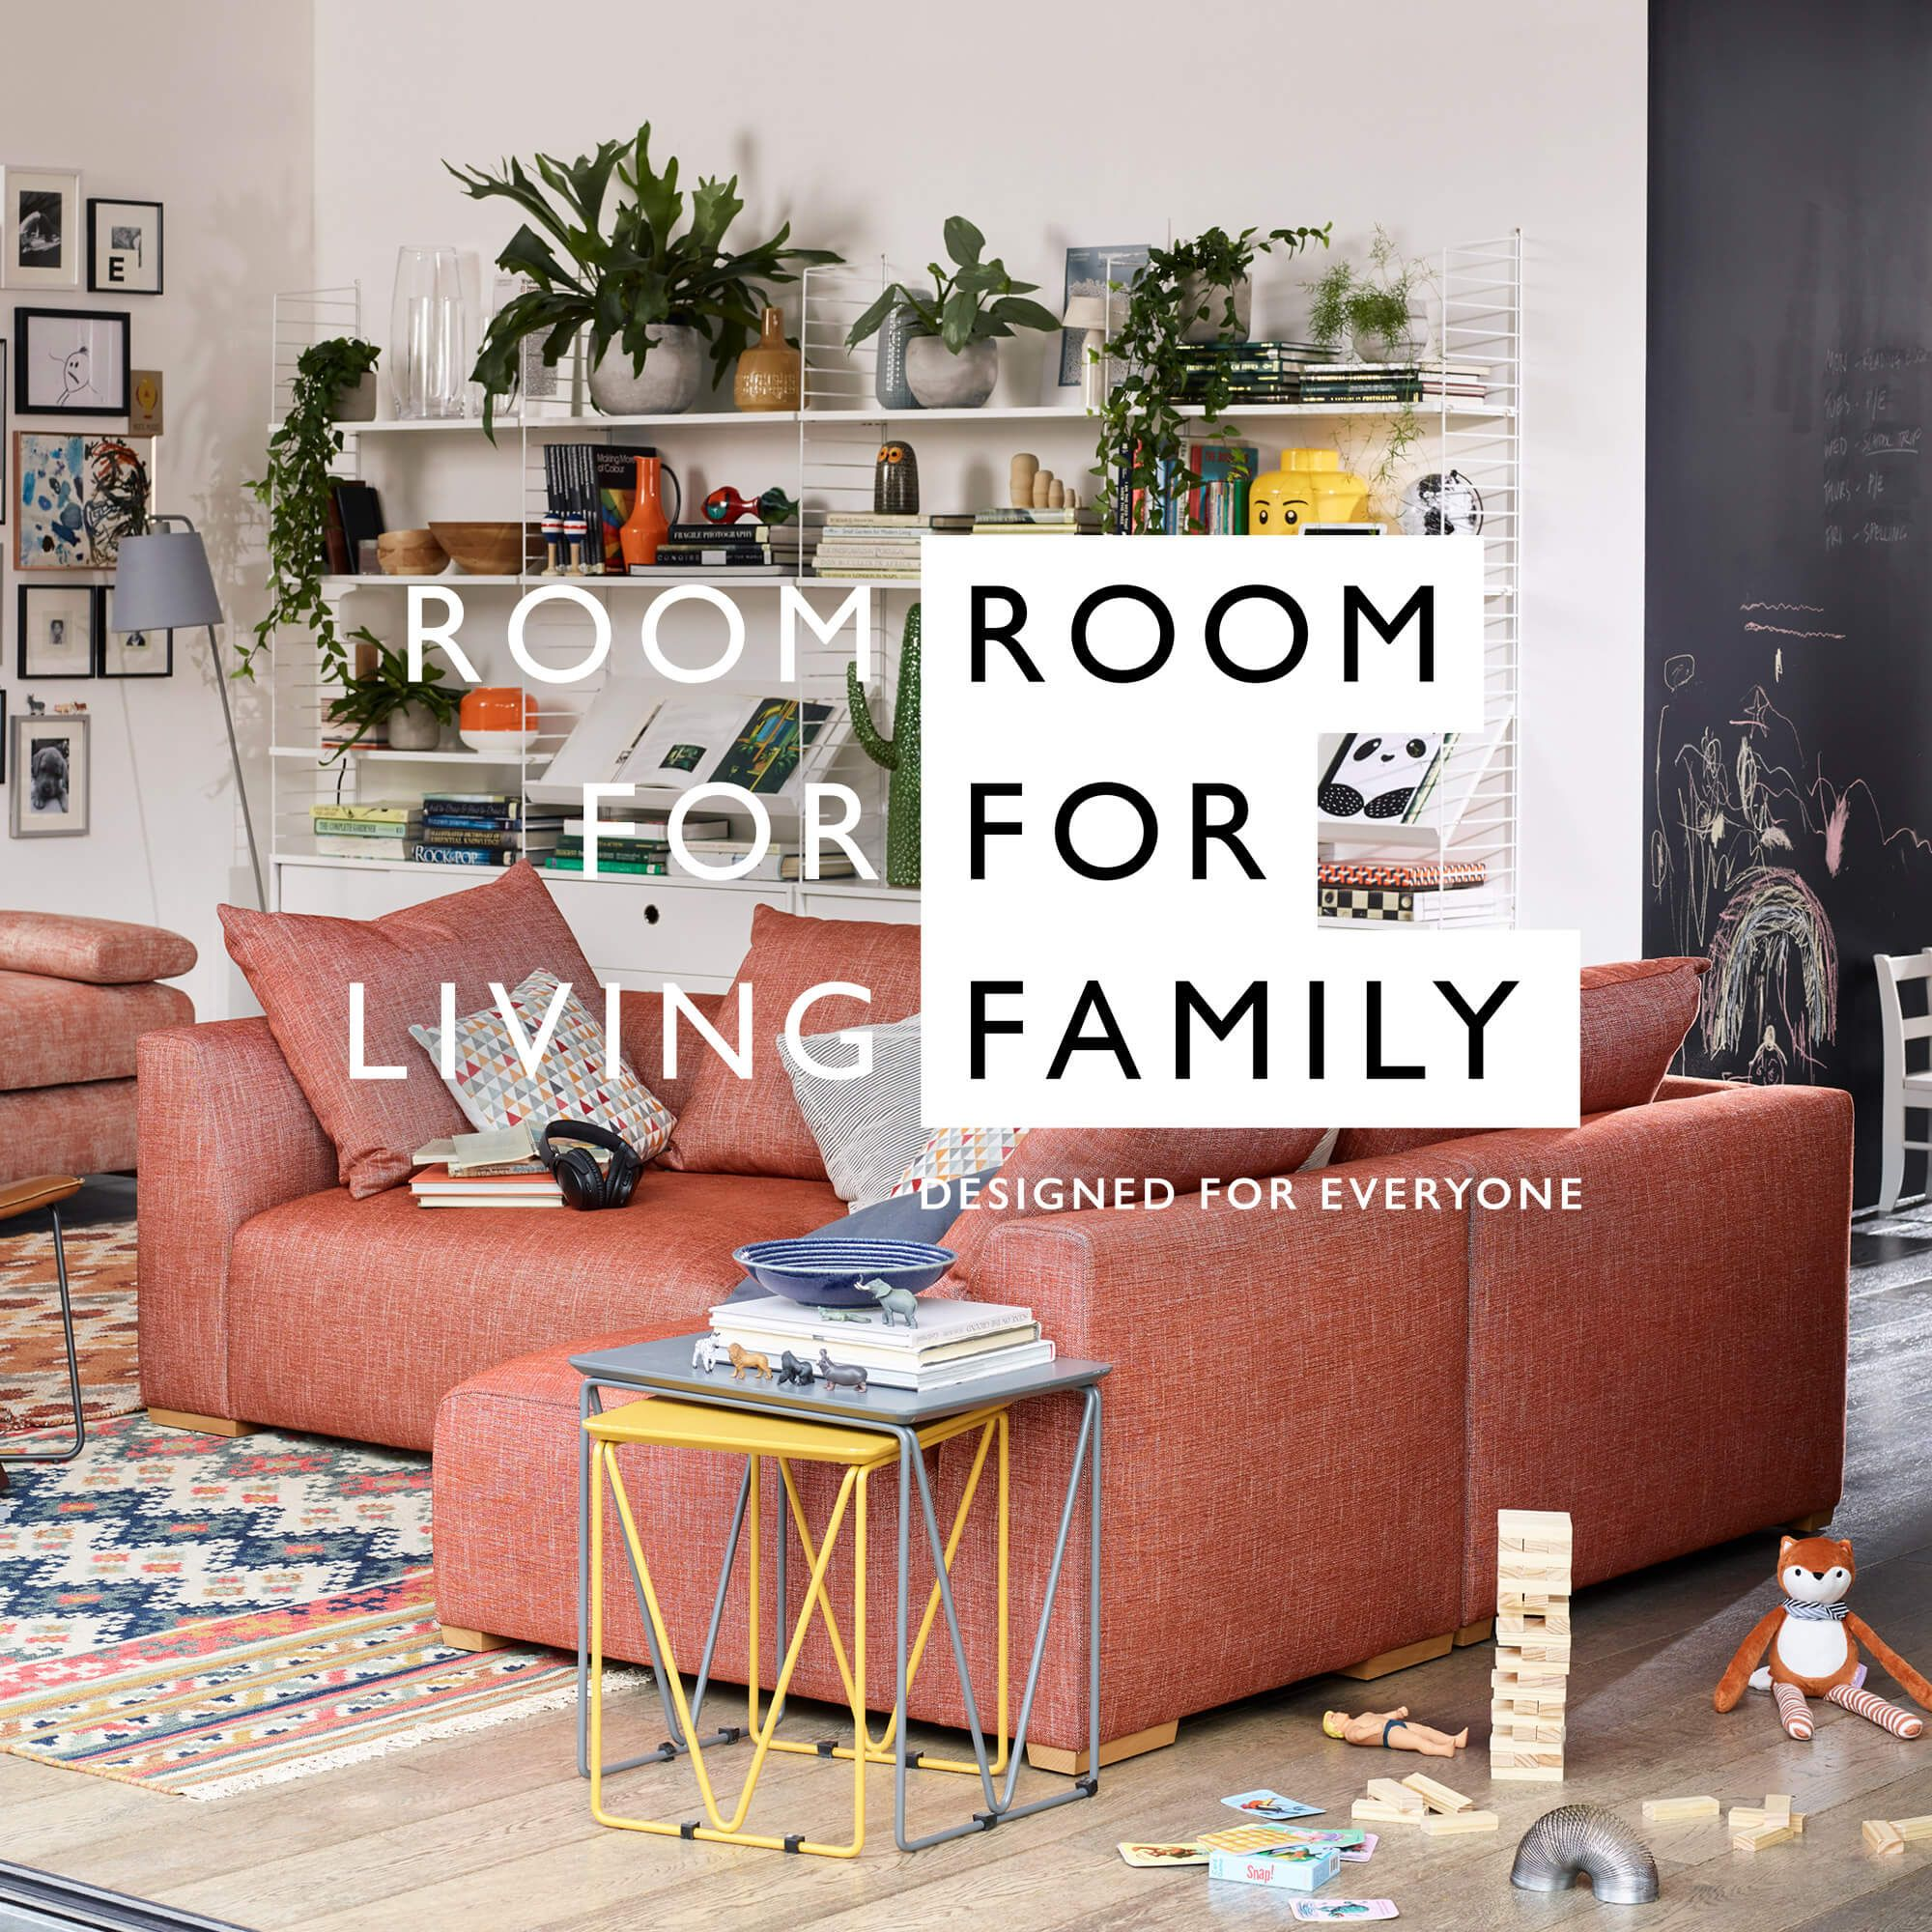 Room for Family